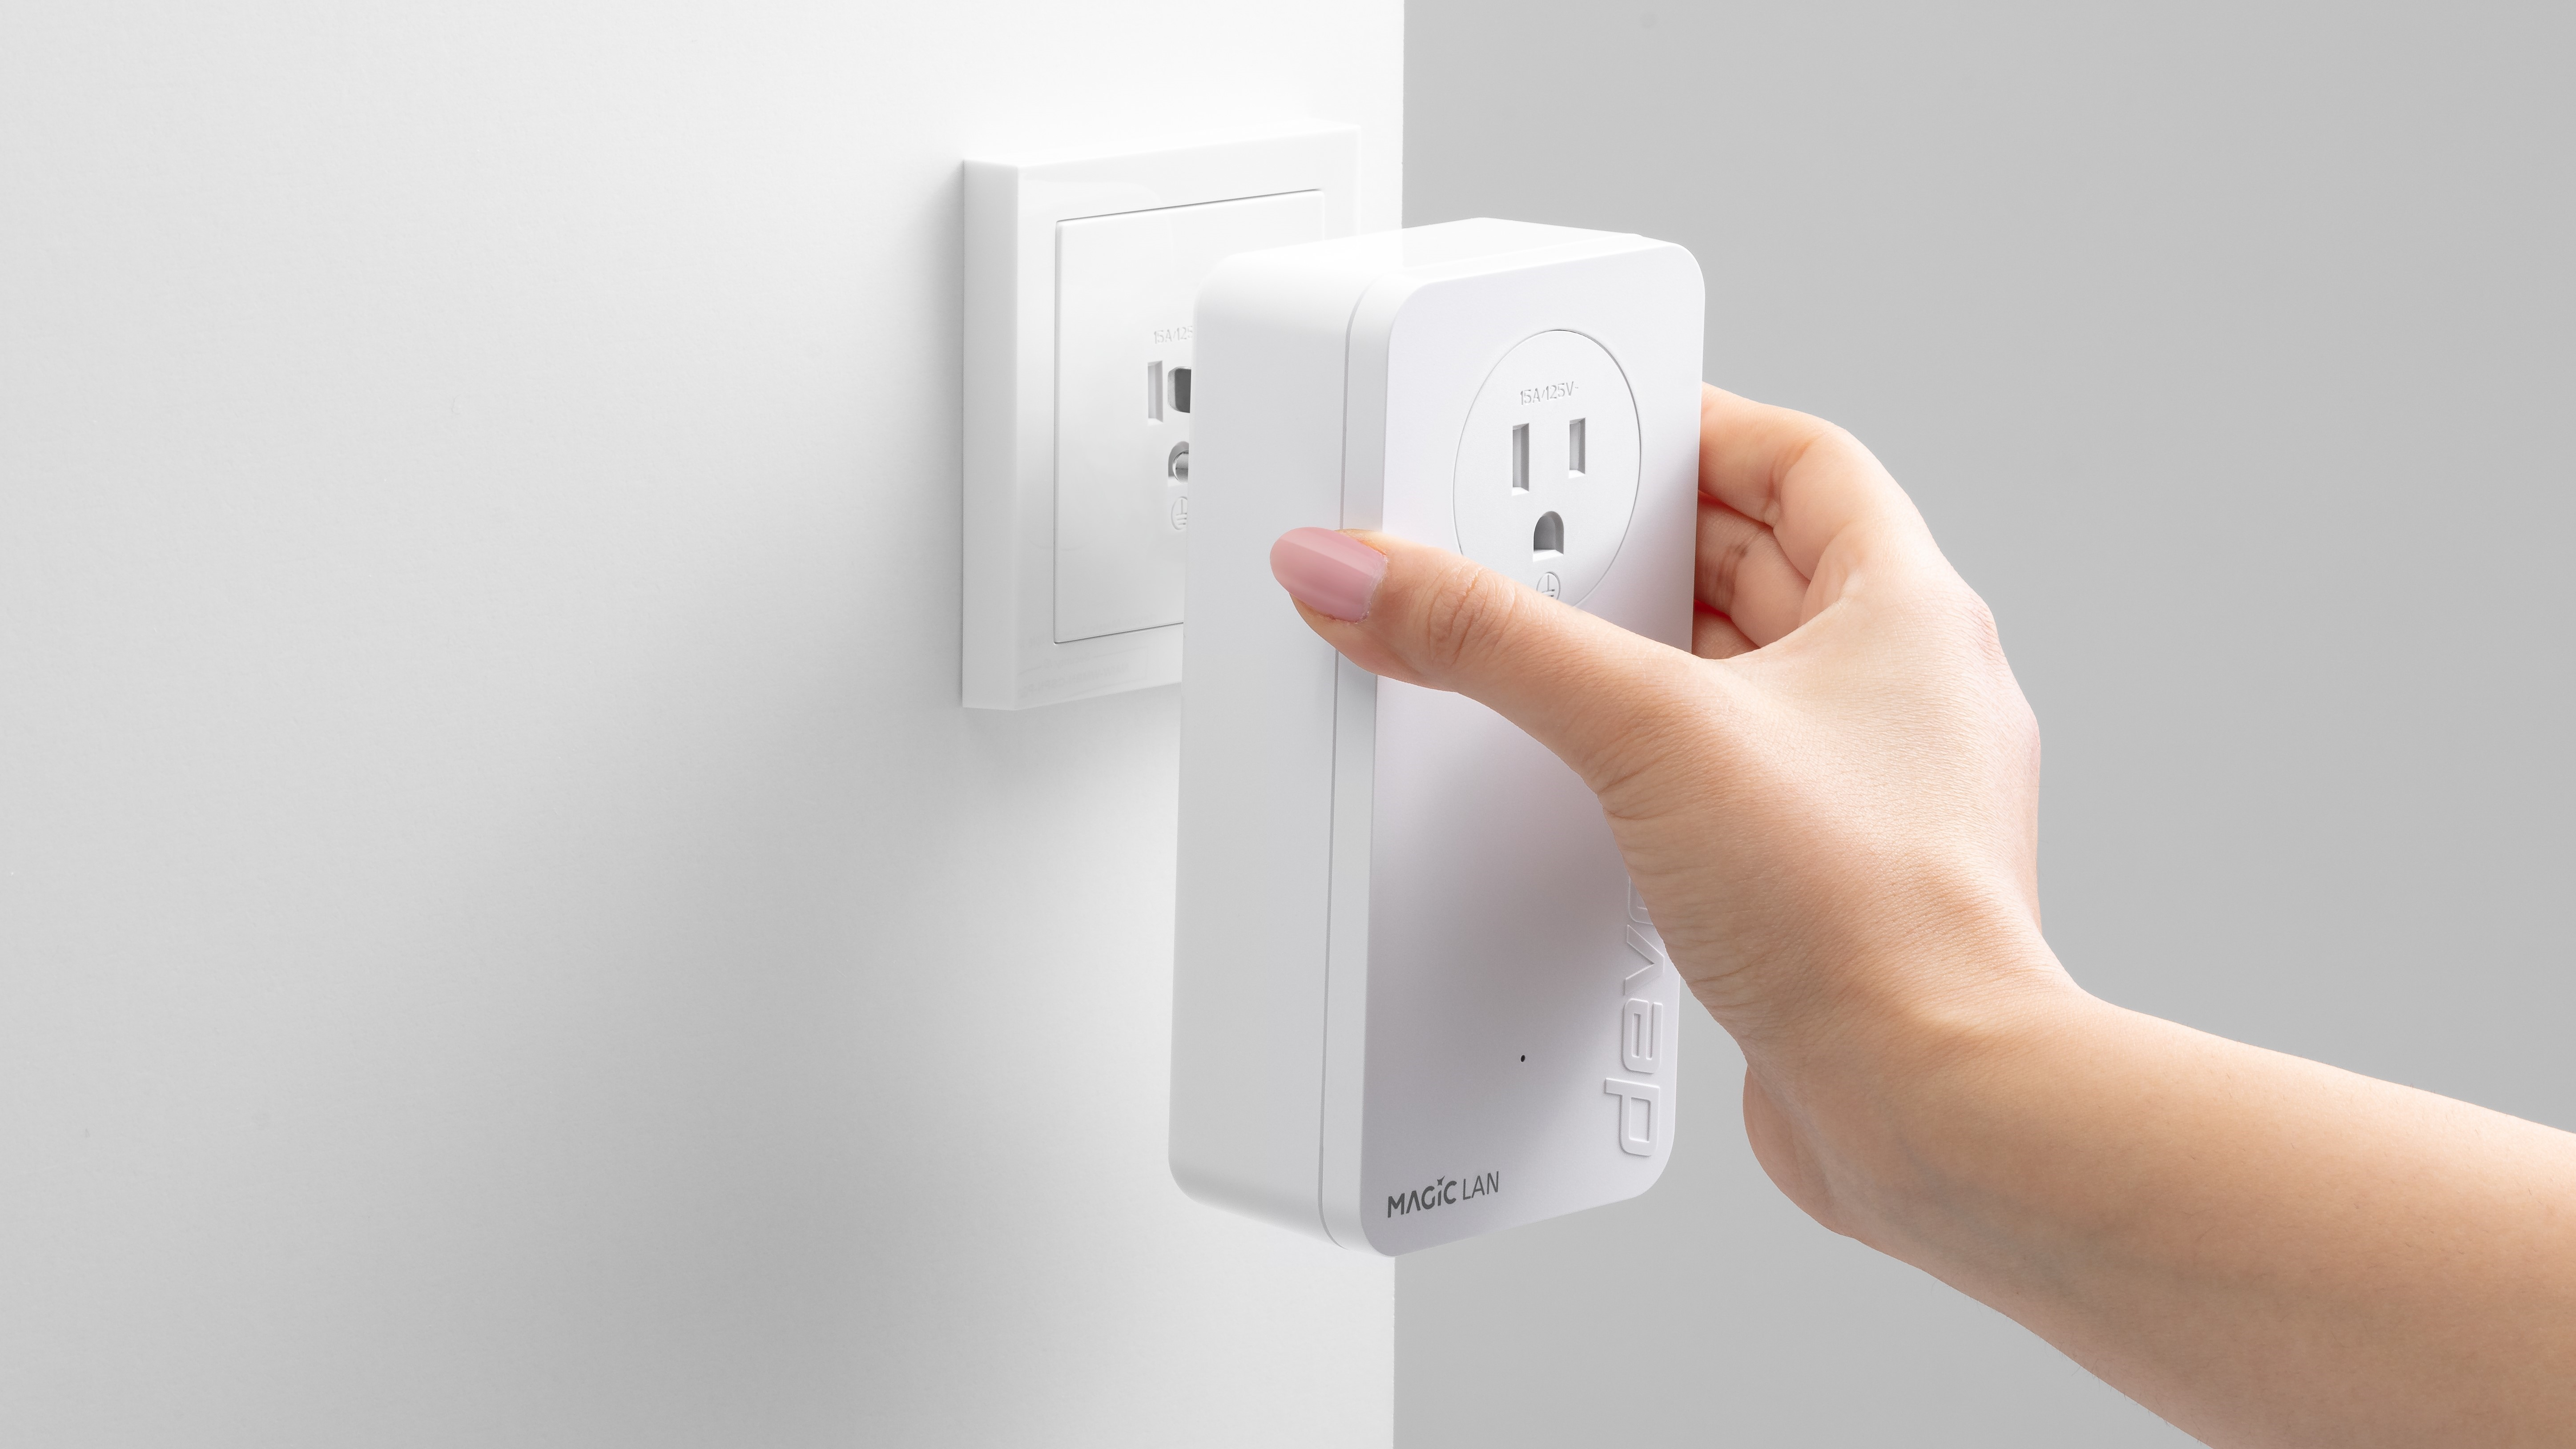 A hand plugging a devolo Magic 2 LAN triple powerline adapter into an electrical outlet.